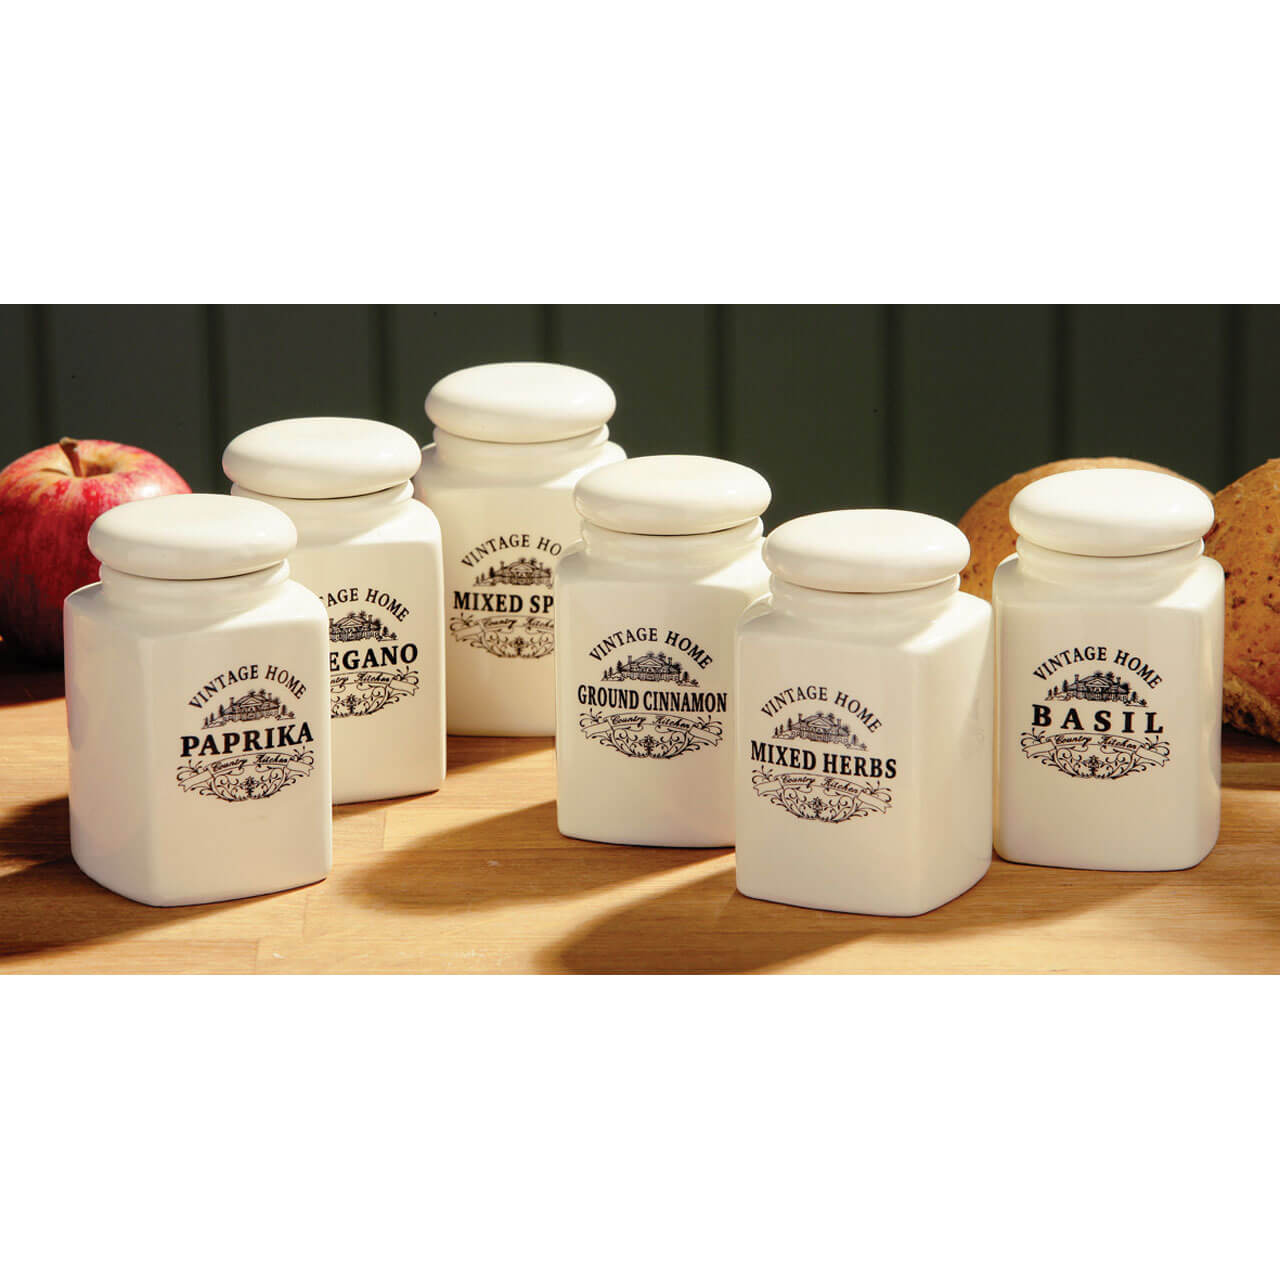 Premier Housewares Vintage Home Spice Jars (Set of 6) - Cream Ceramic